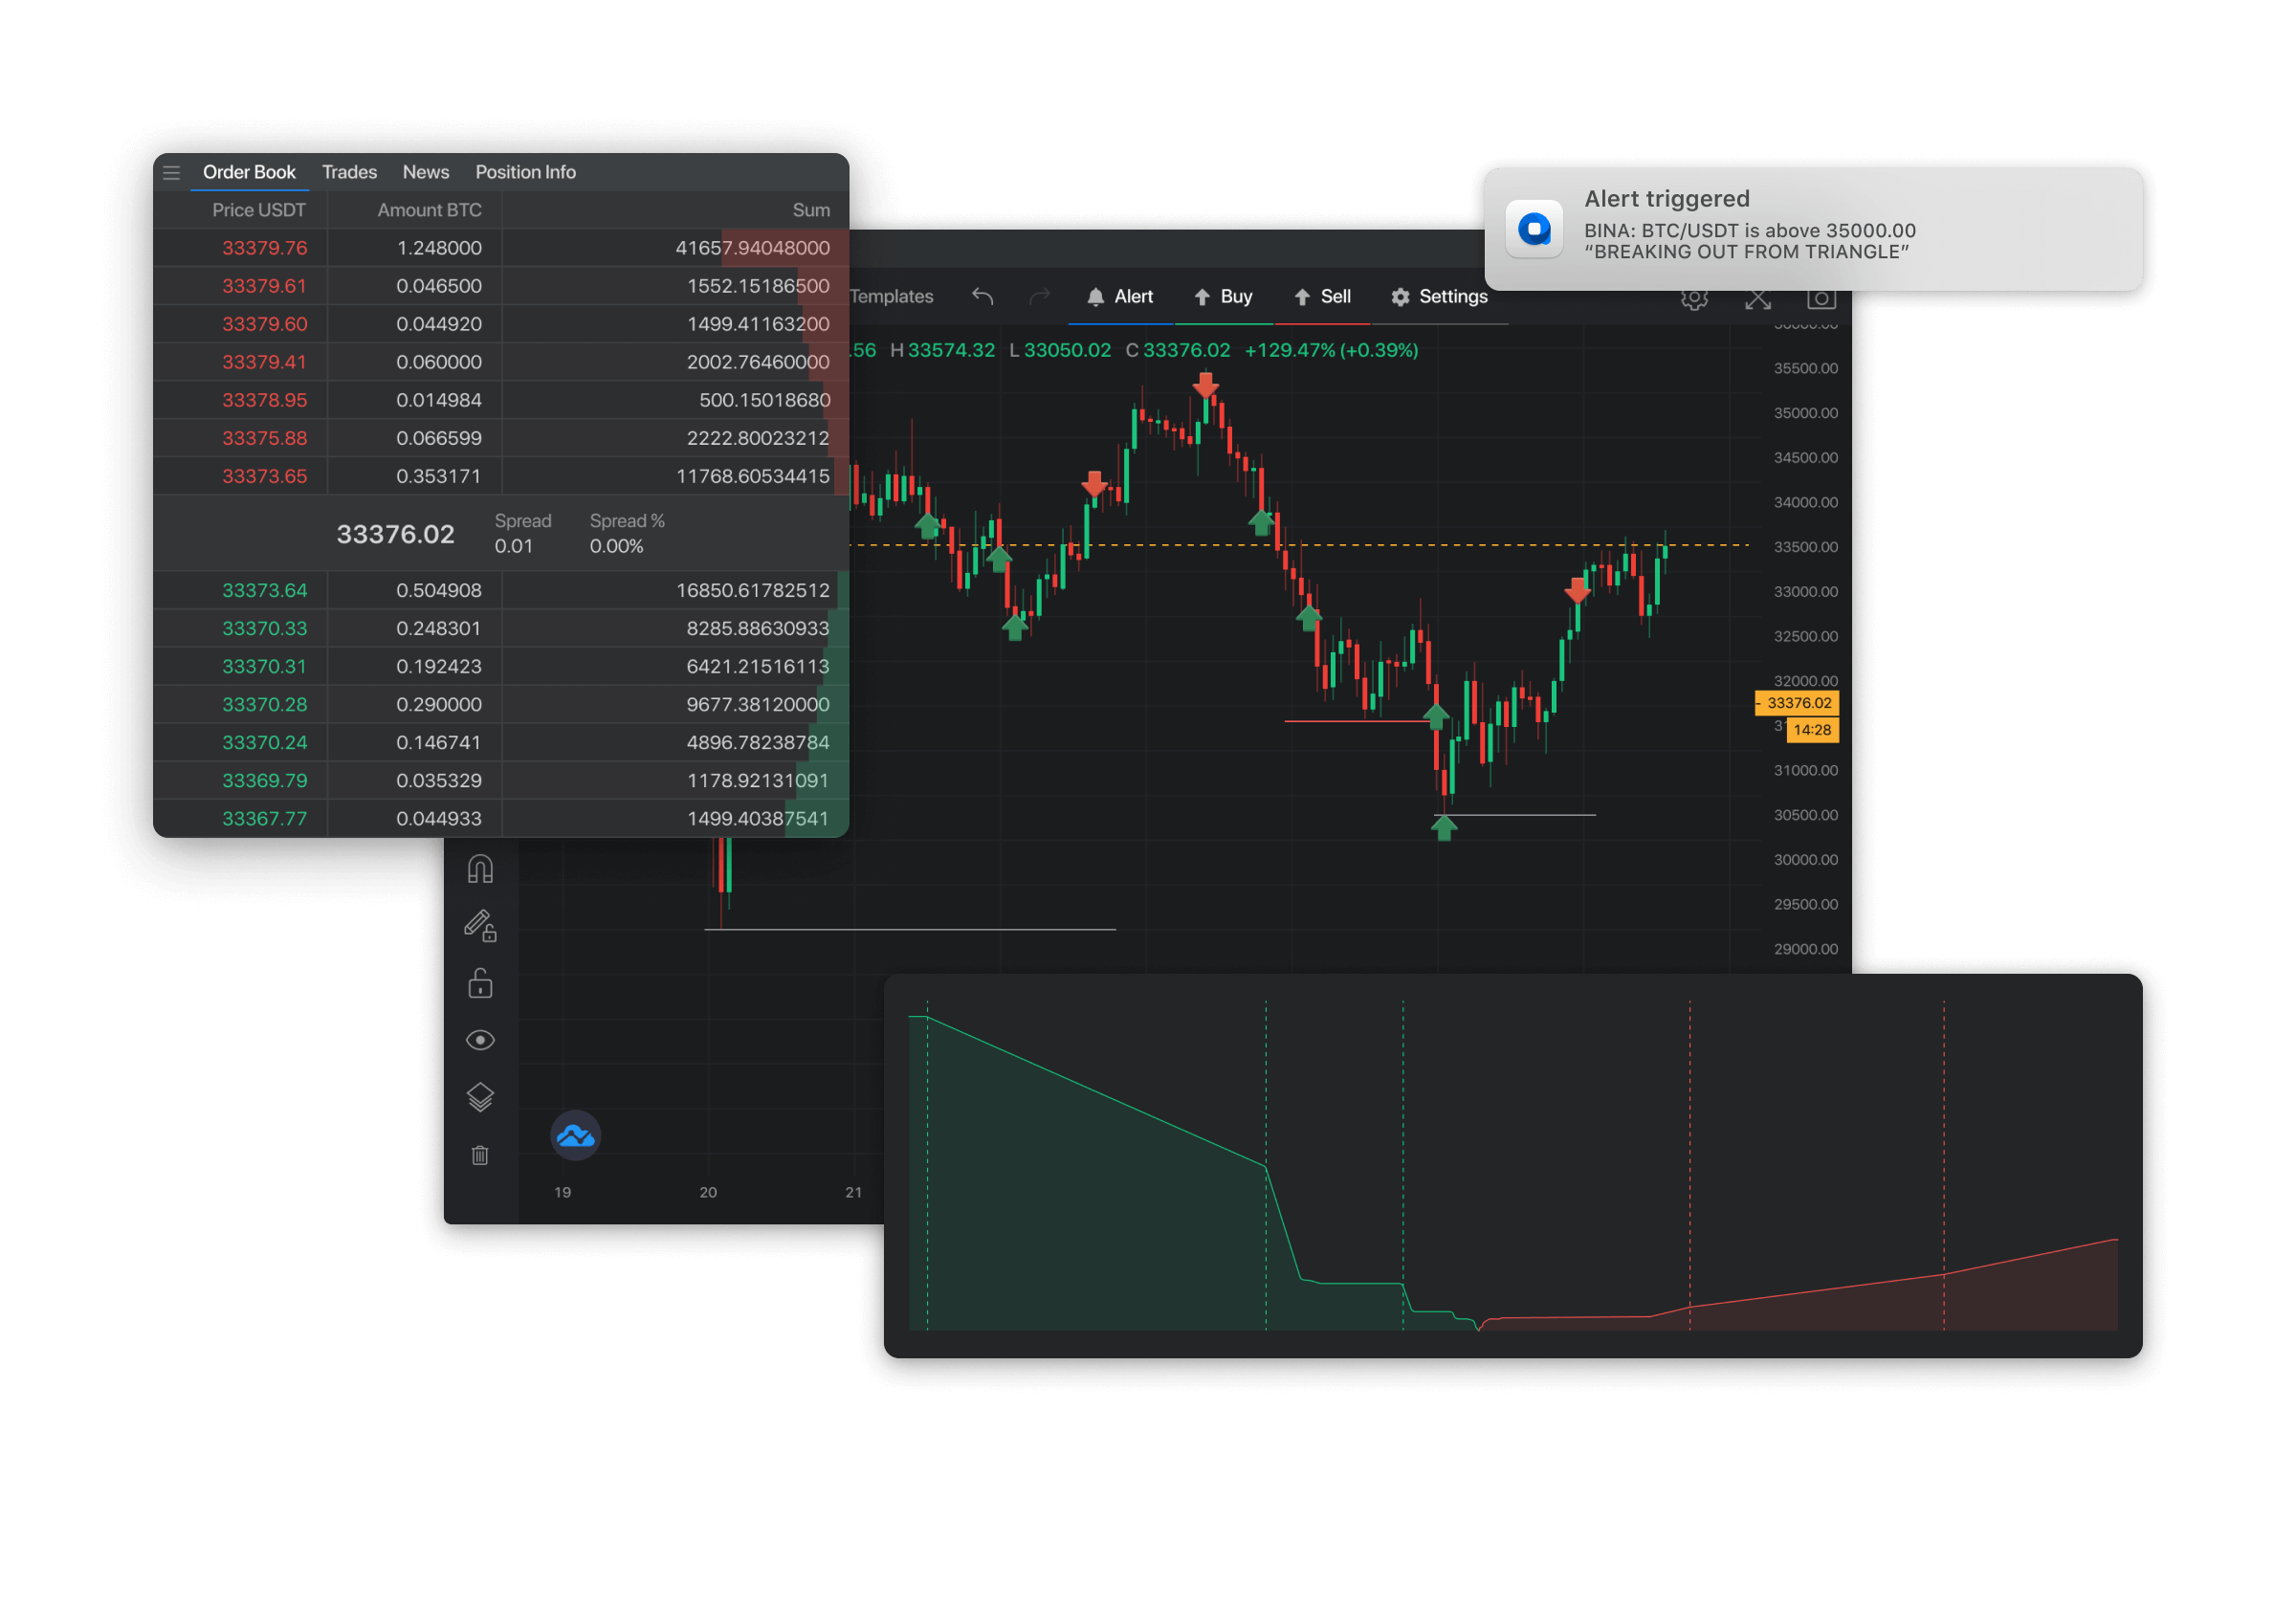 Real-time market data